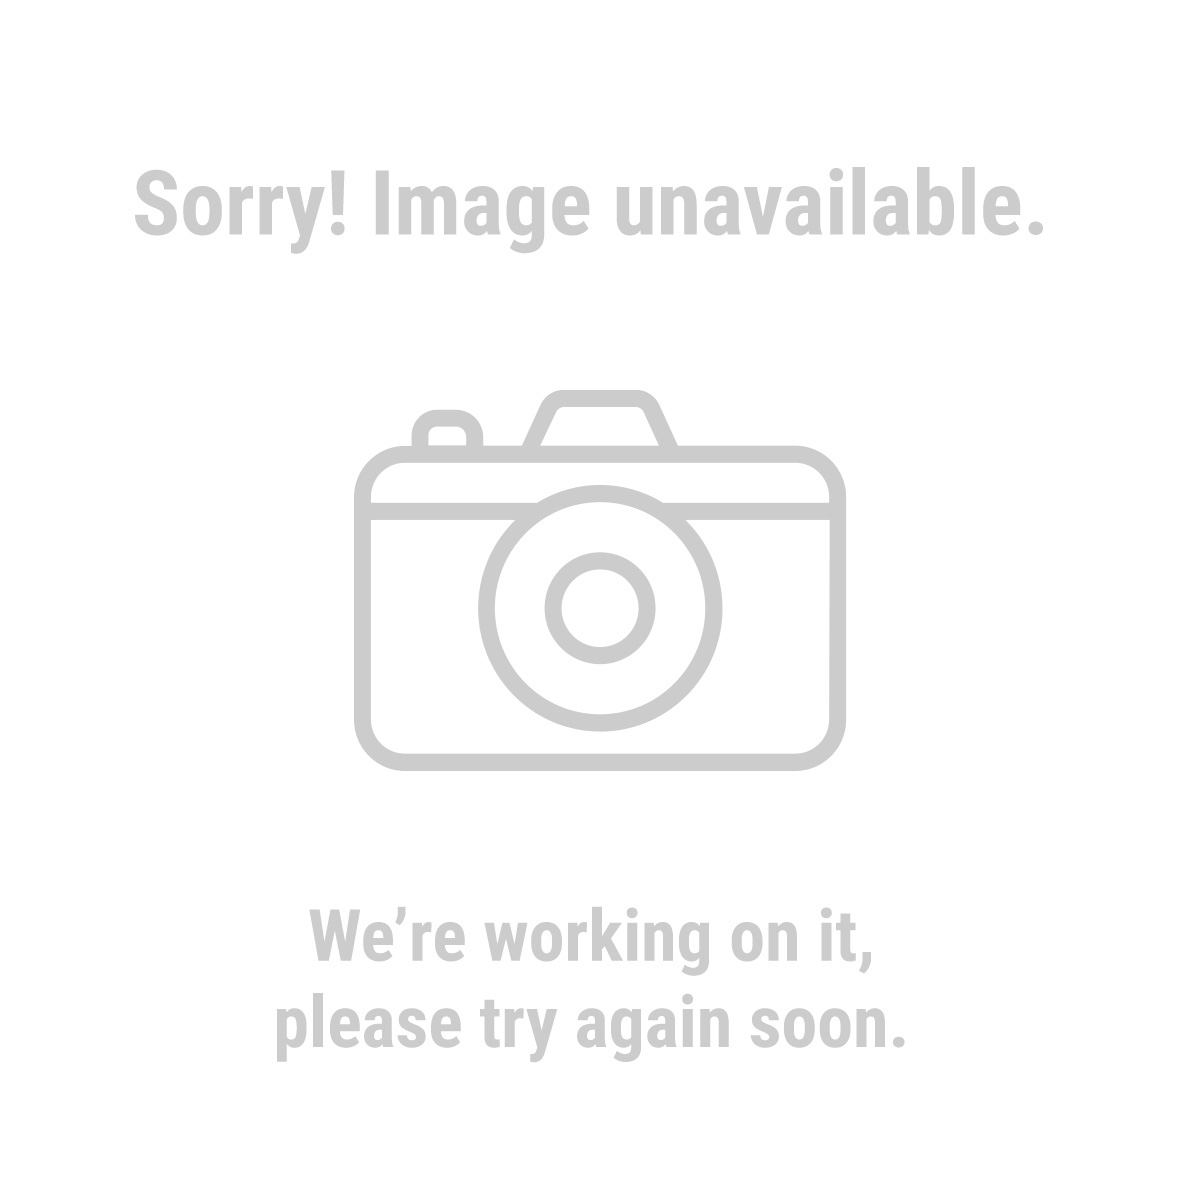 Chicago Electric Welding Systems 46092 Adjustable Shade Auto-Darkening Welding Helmet